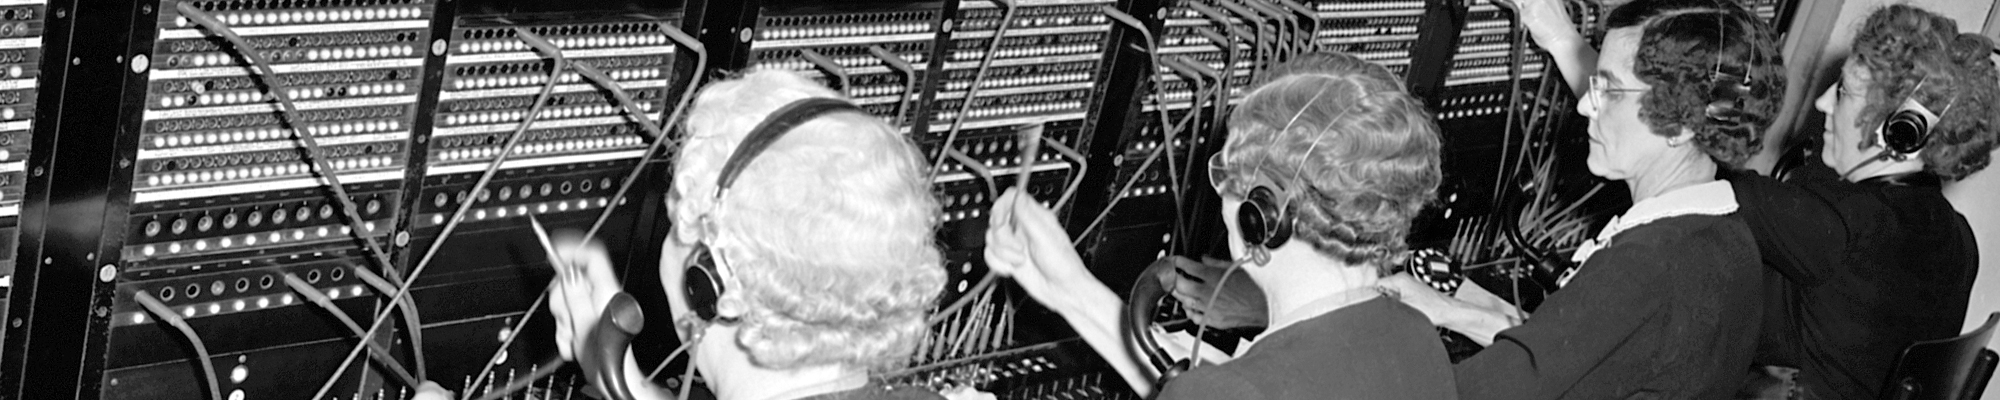 4 Telephone operators in the United States Steel Corporation in April 1946.